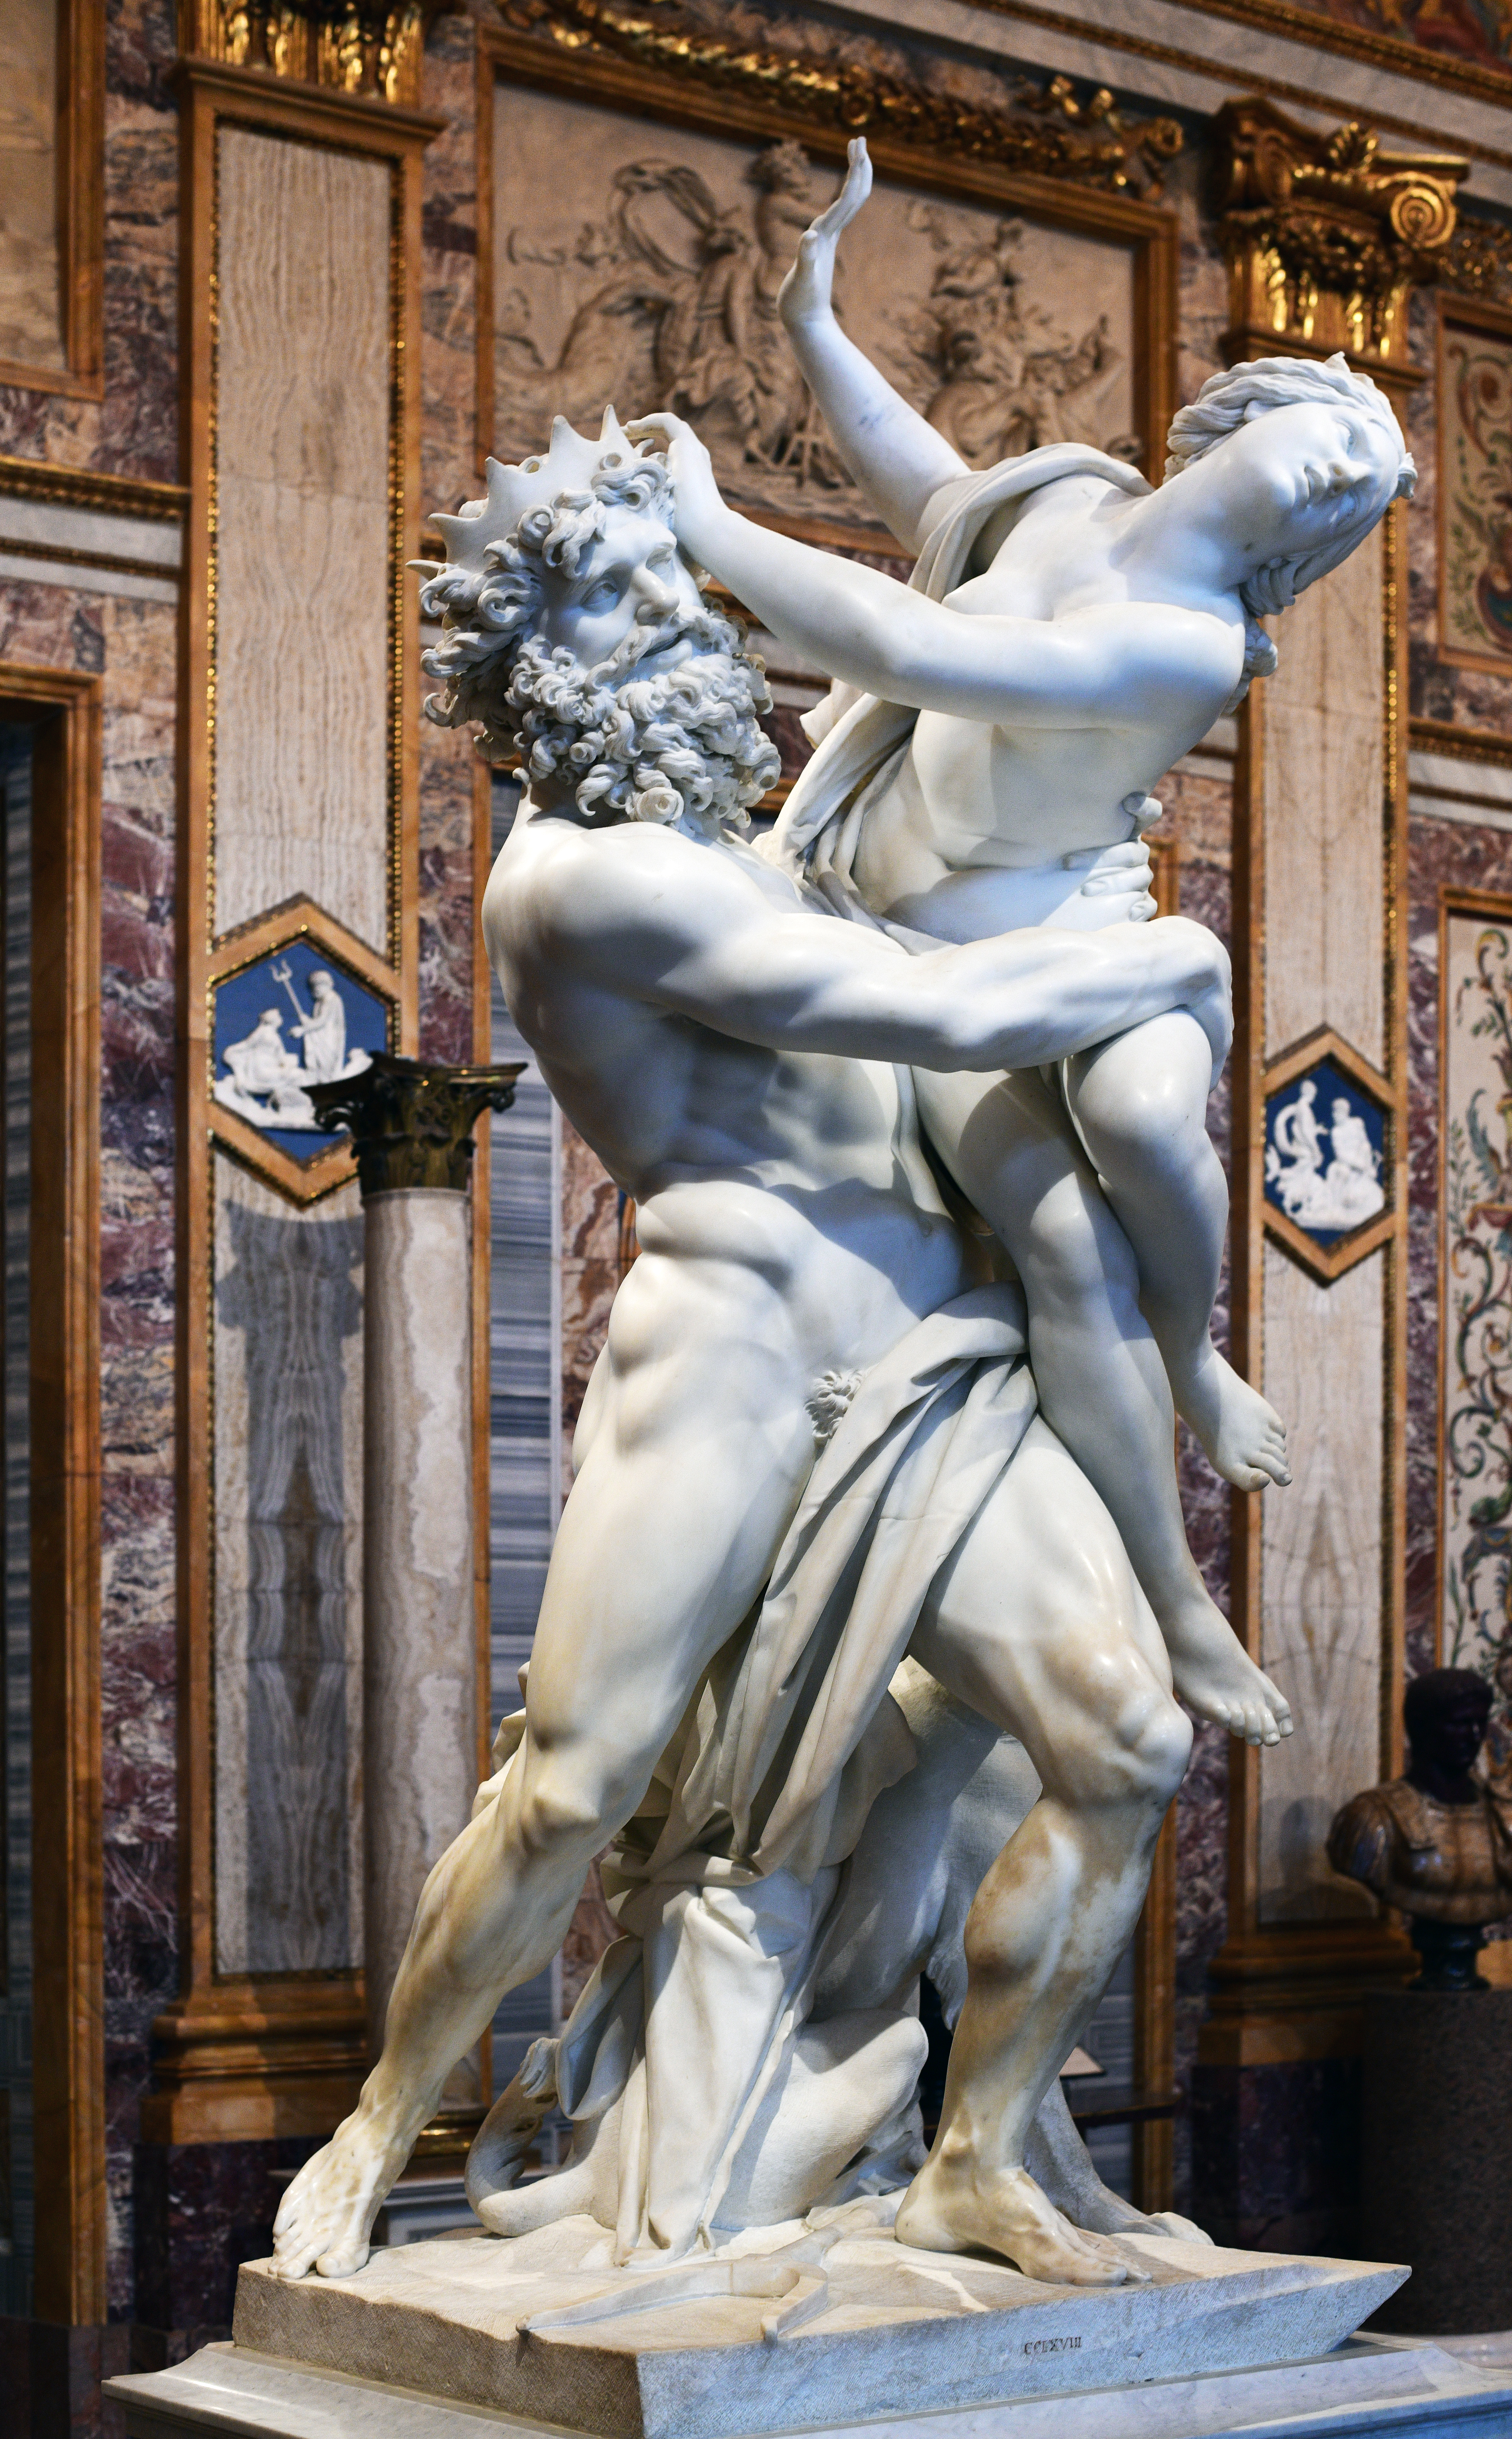 The_Rape_of_Proserpina_(Rome).jpg